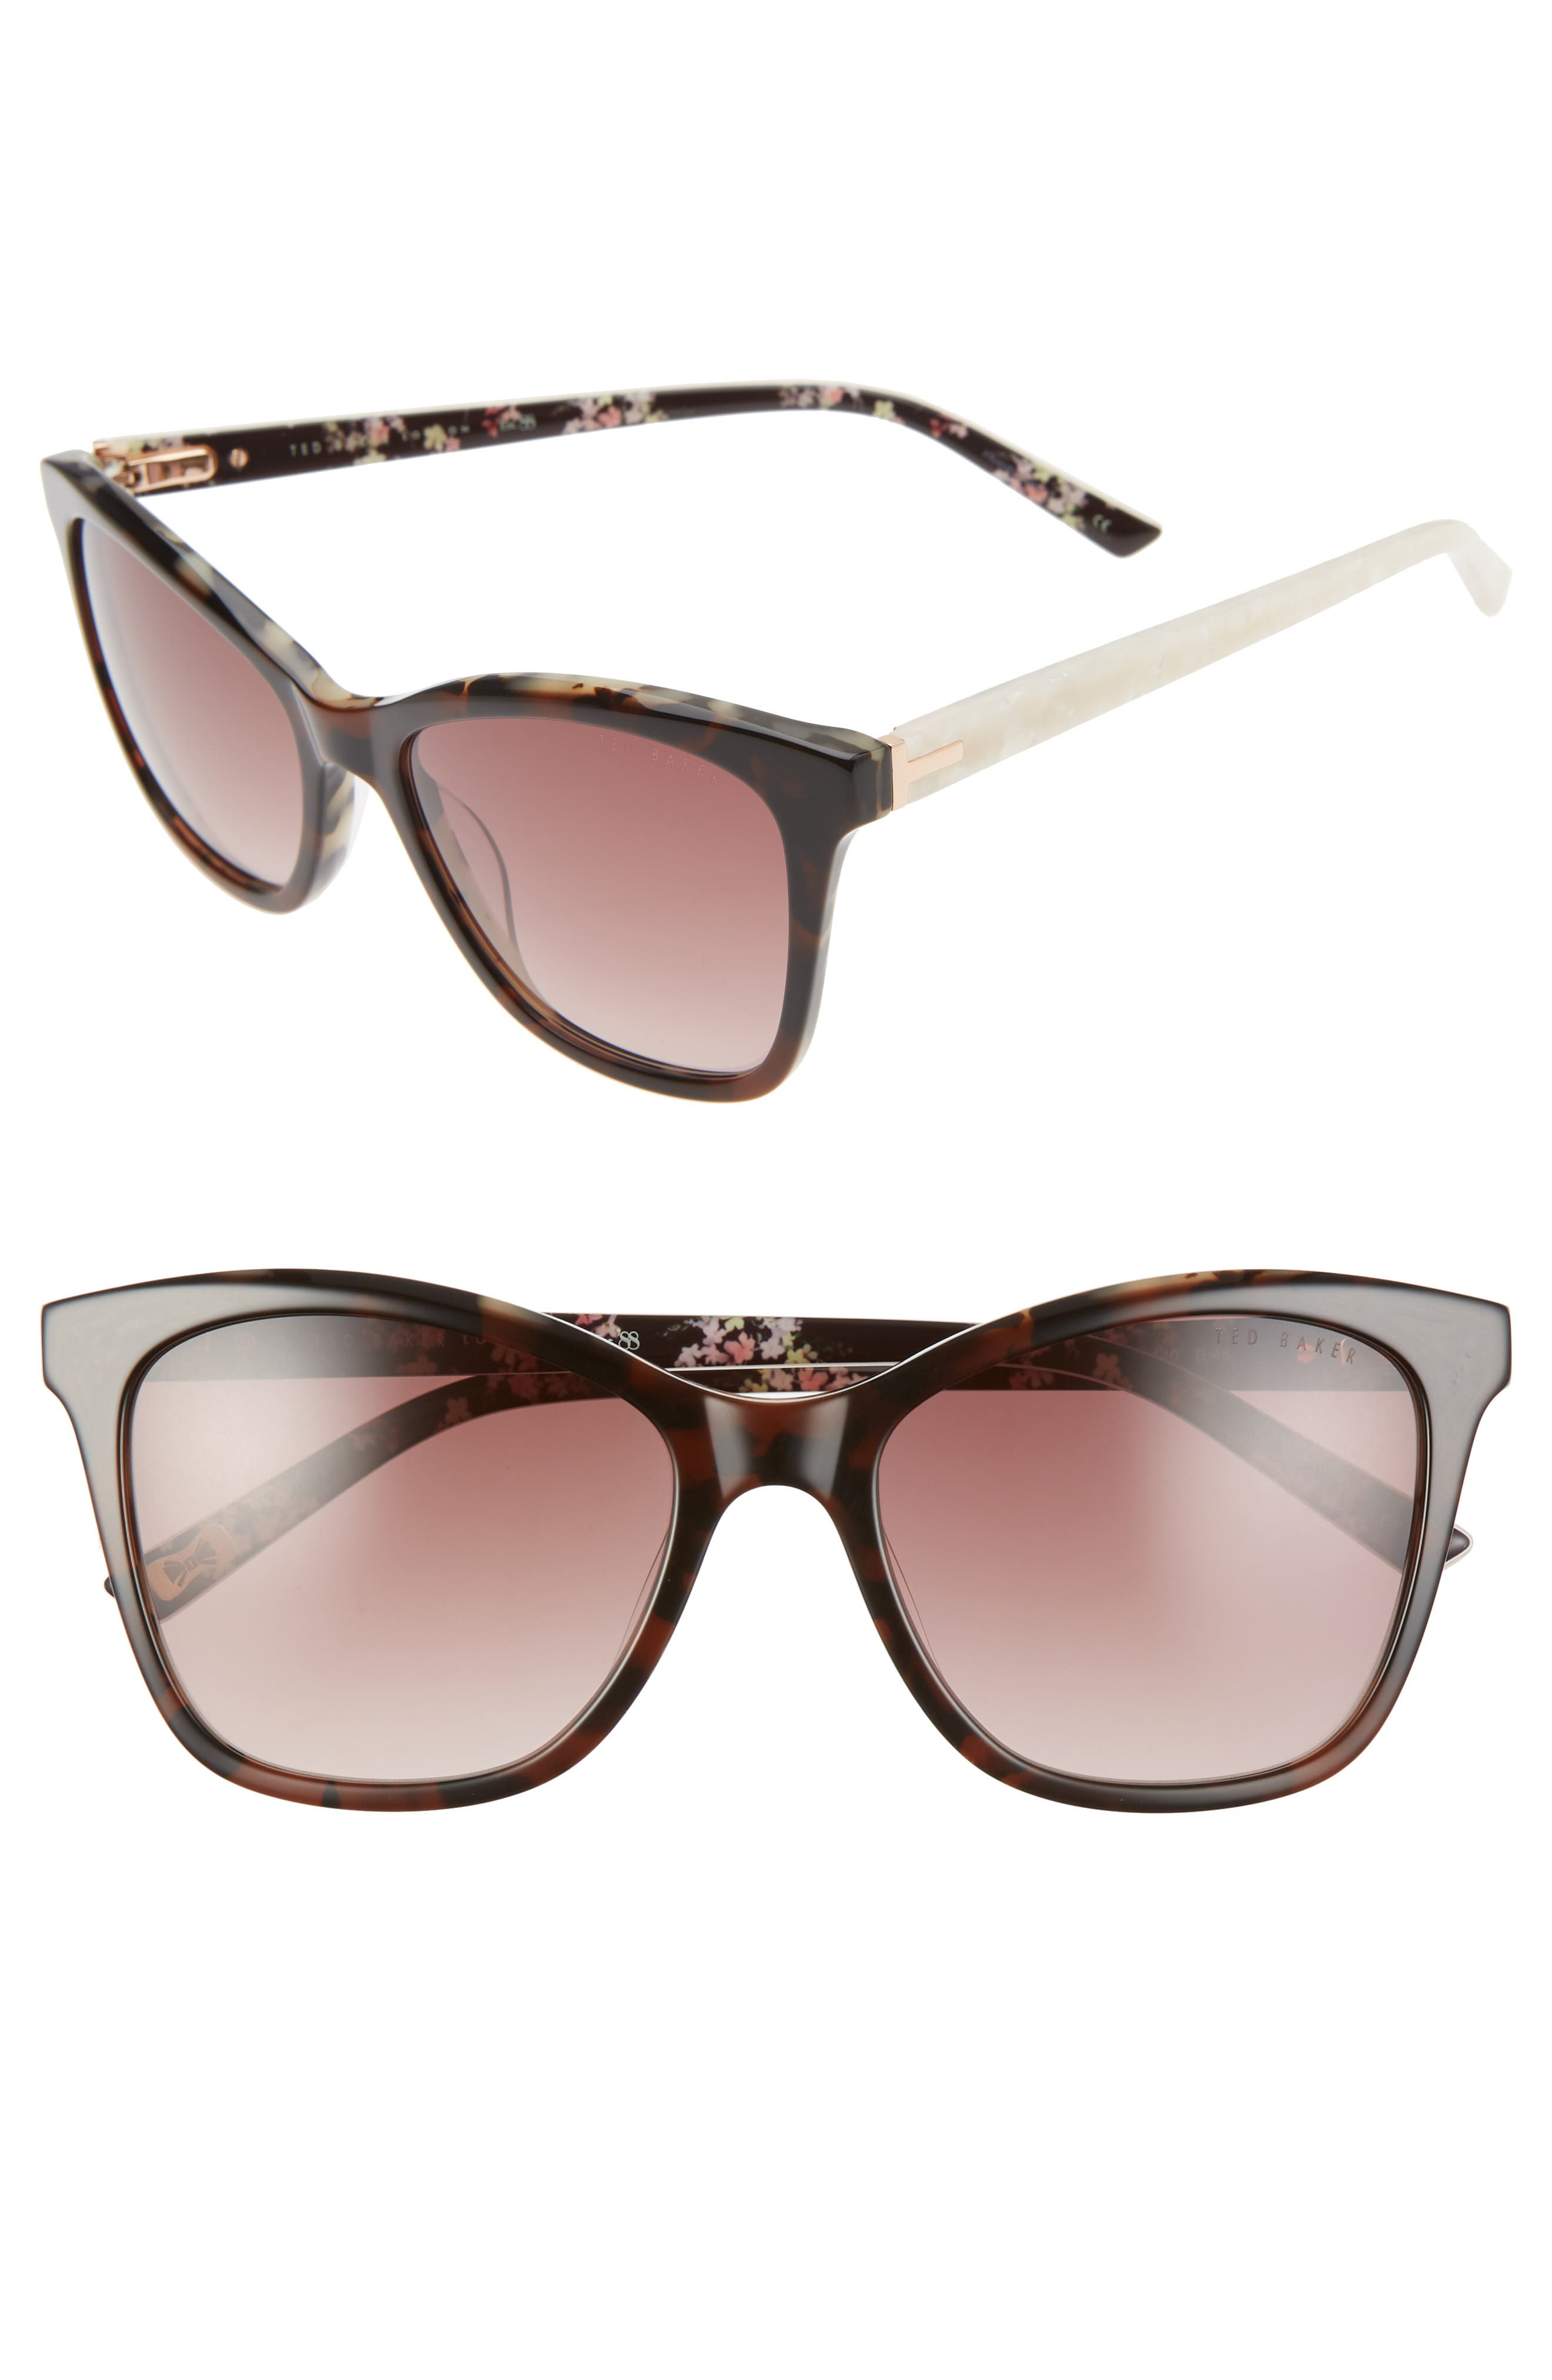 A slight cat eye gives some style and sass to these square sunglasses branded with a T temple hinge and inner floral print. Style Name: Ted Baker London 54mm Cat Eye Sunglasses. Style Number: 5987435. Available in stores.